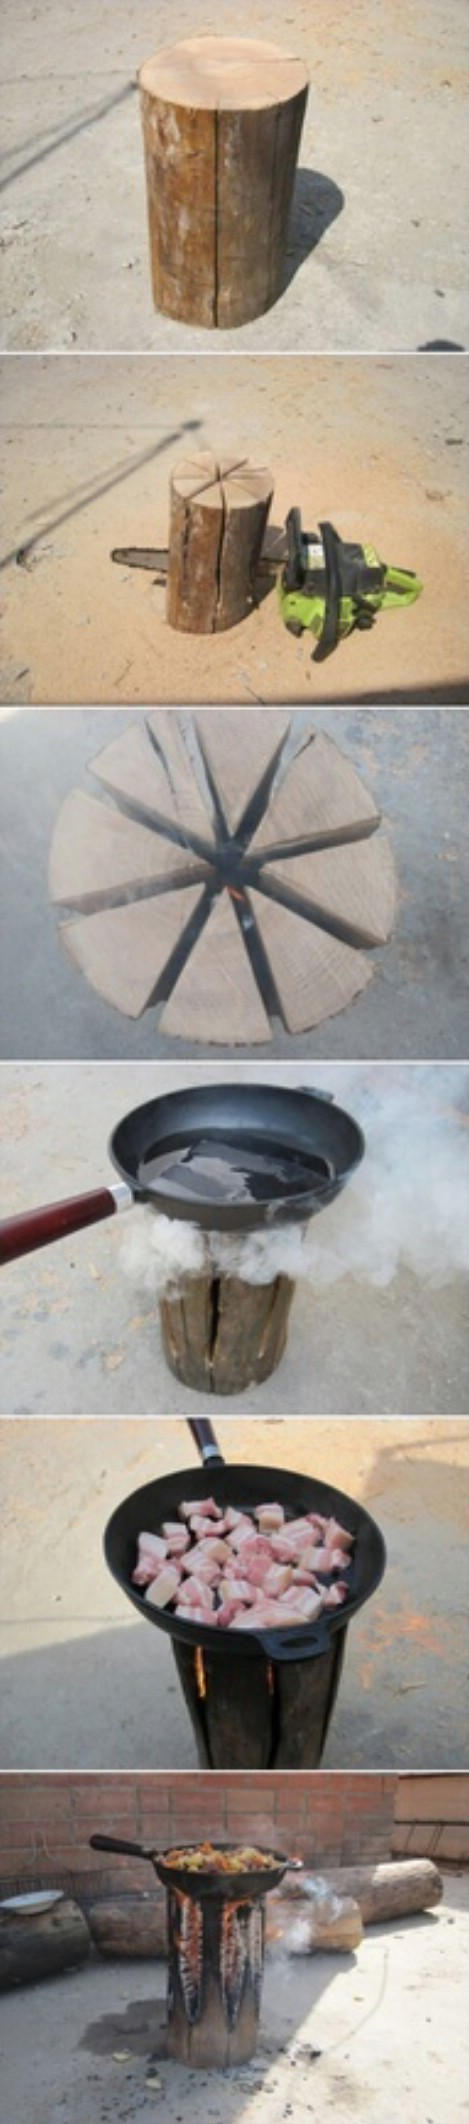 camping-diy-ideas-howtos-lifehacks-27